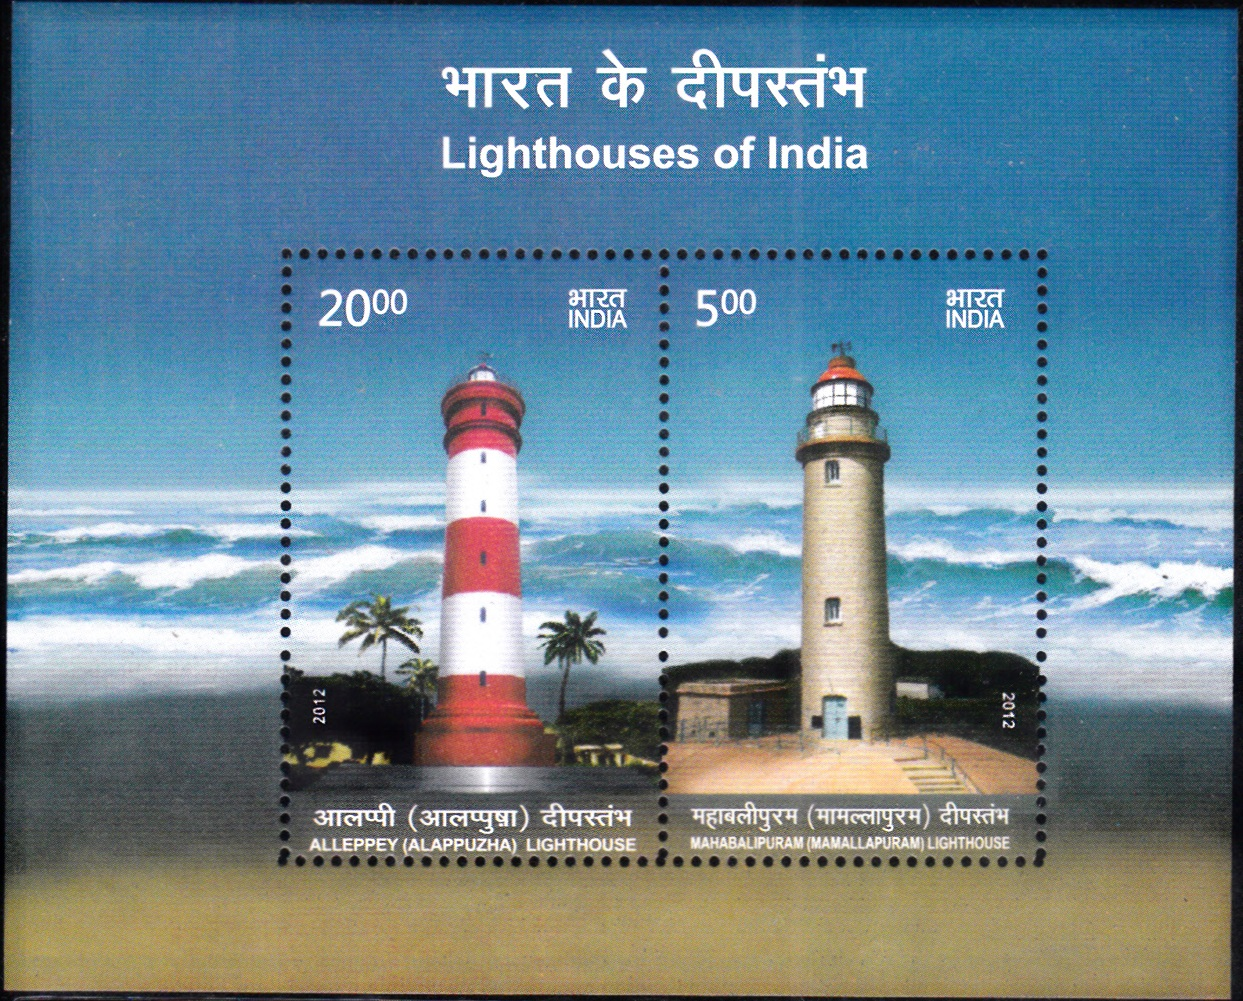 Alappuzha and Mahabalipuram Lighthouses